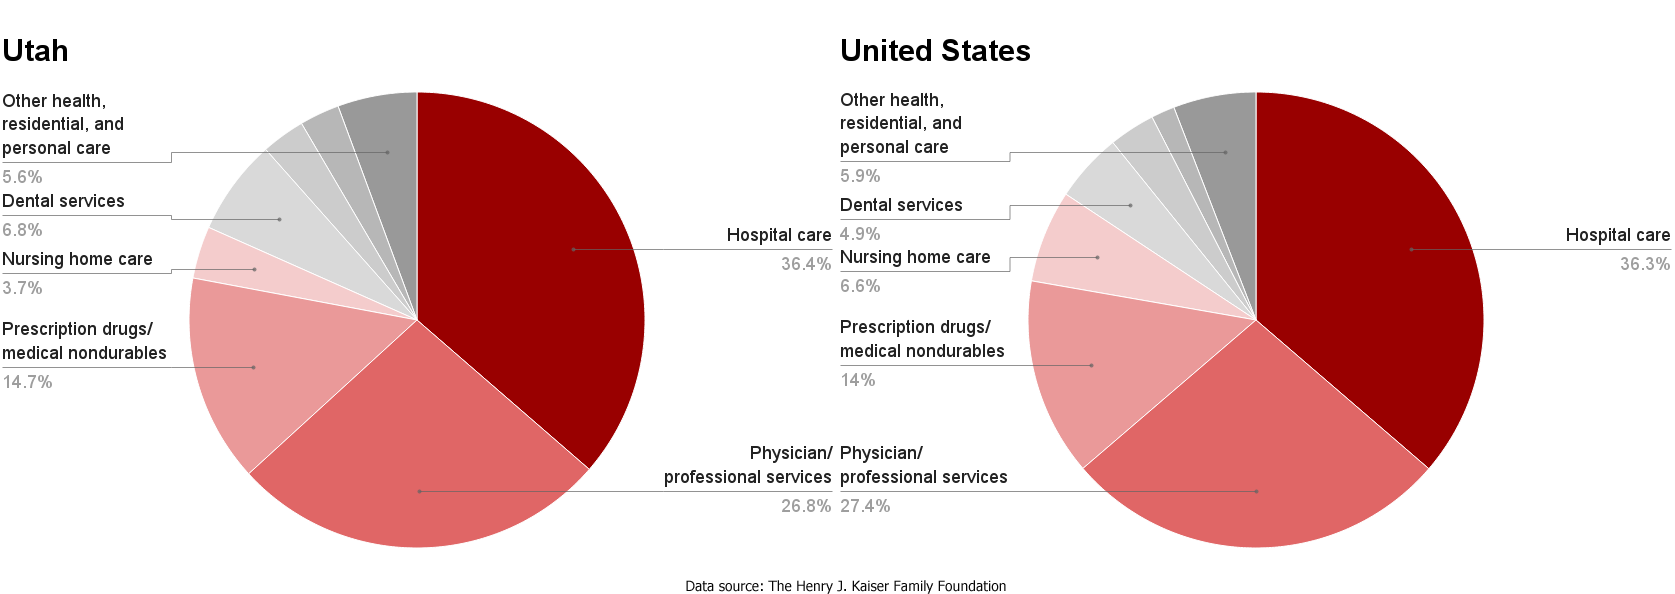 medical care in the united states